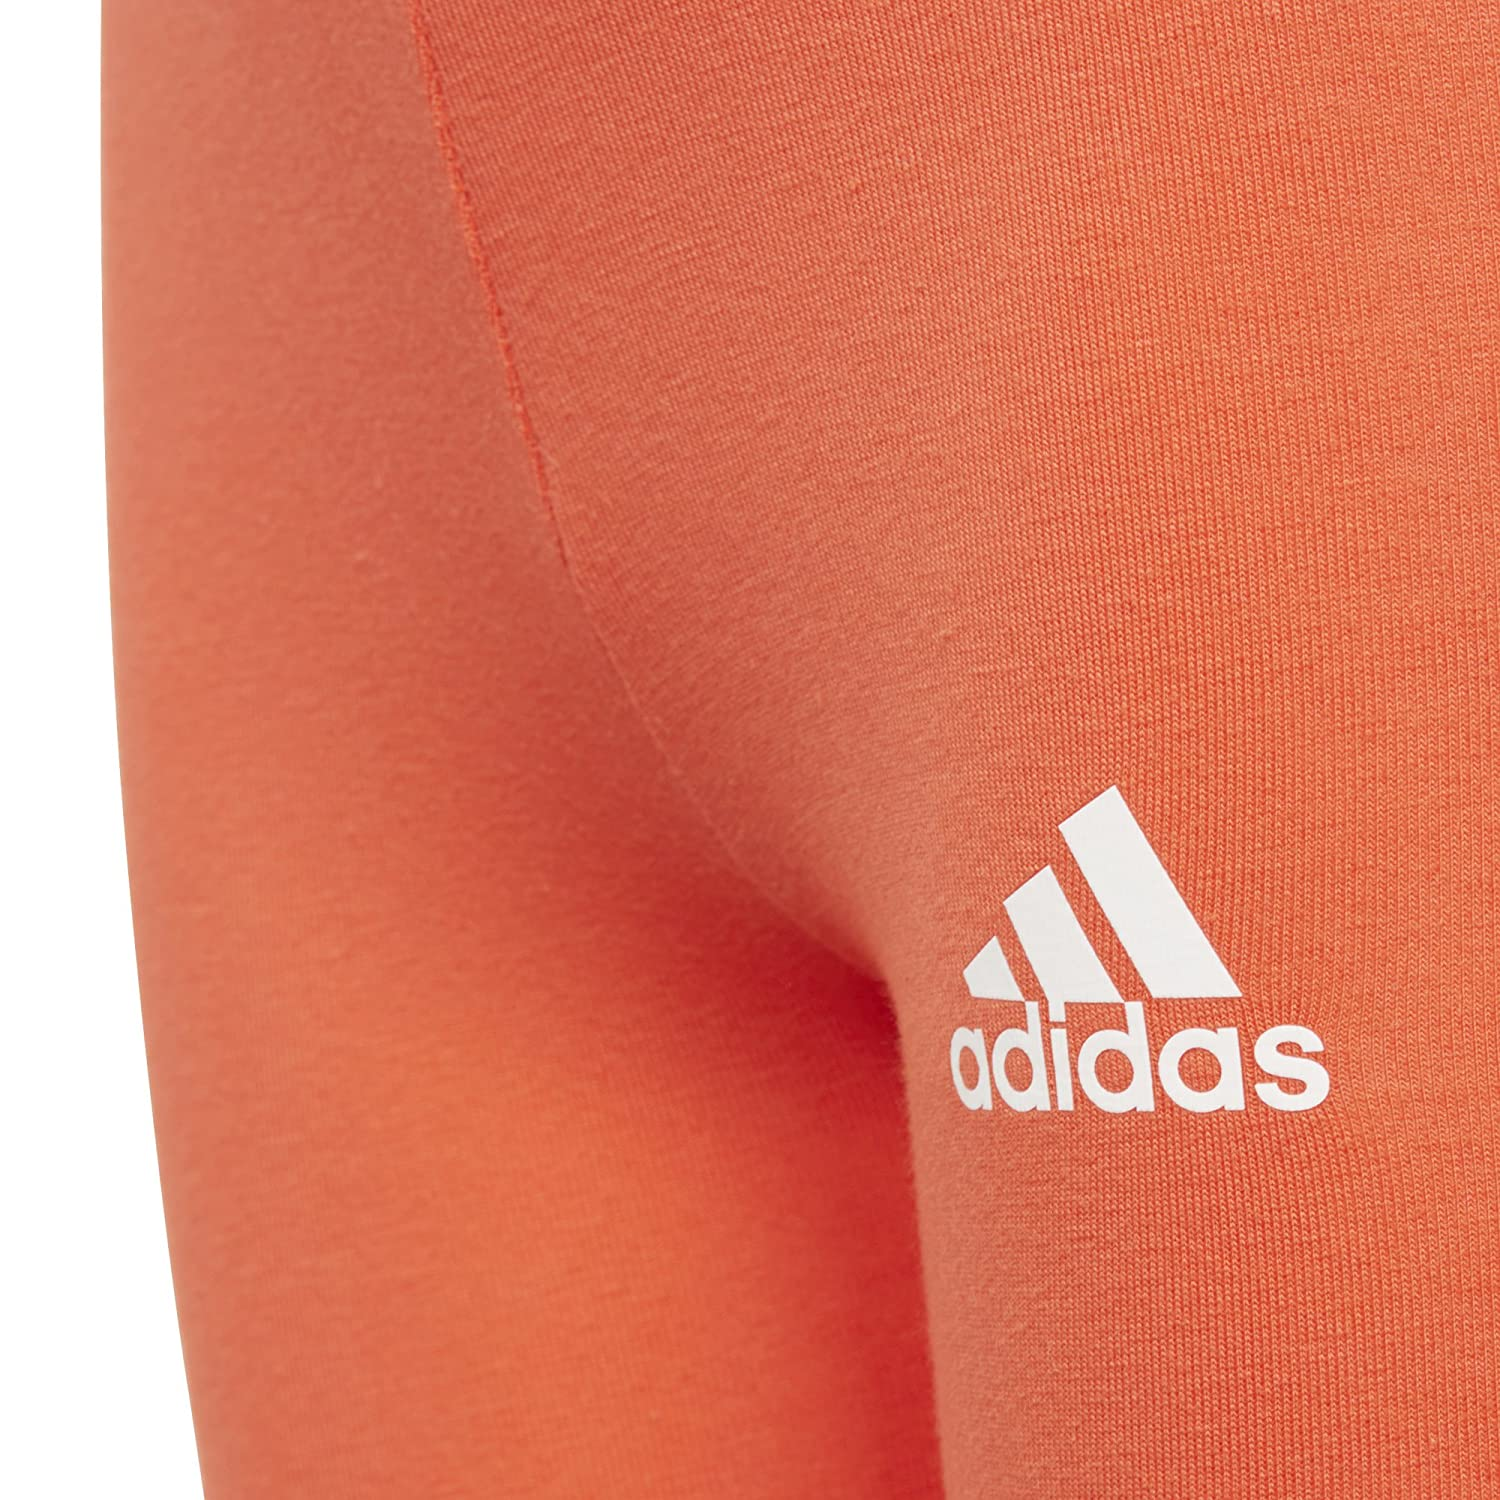 adidas Little Girls Cotton Tights 5 Bright Red//White